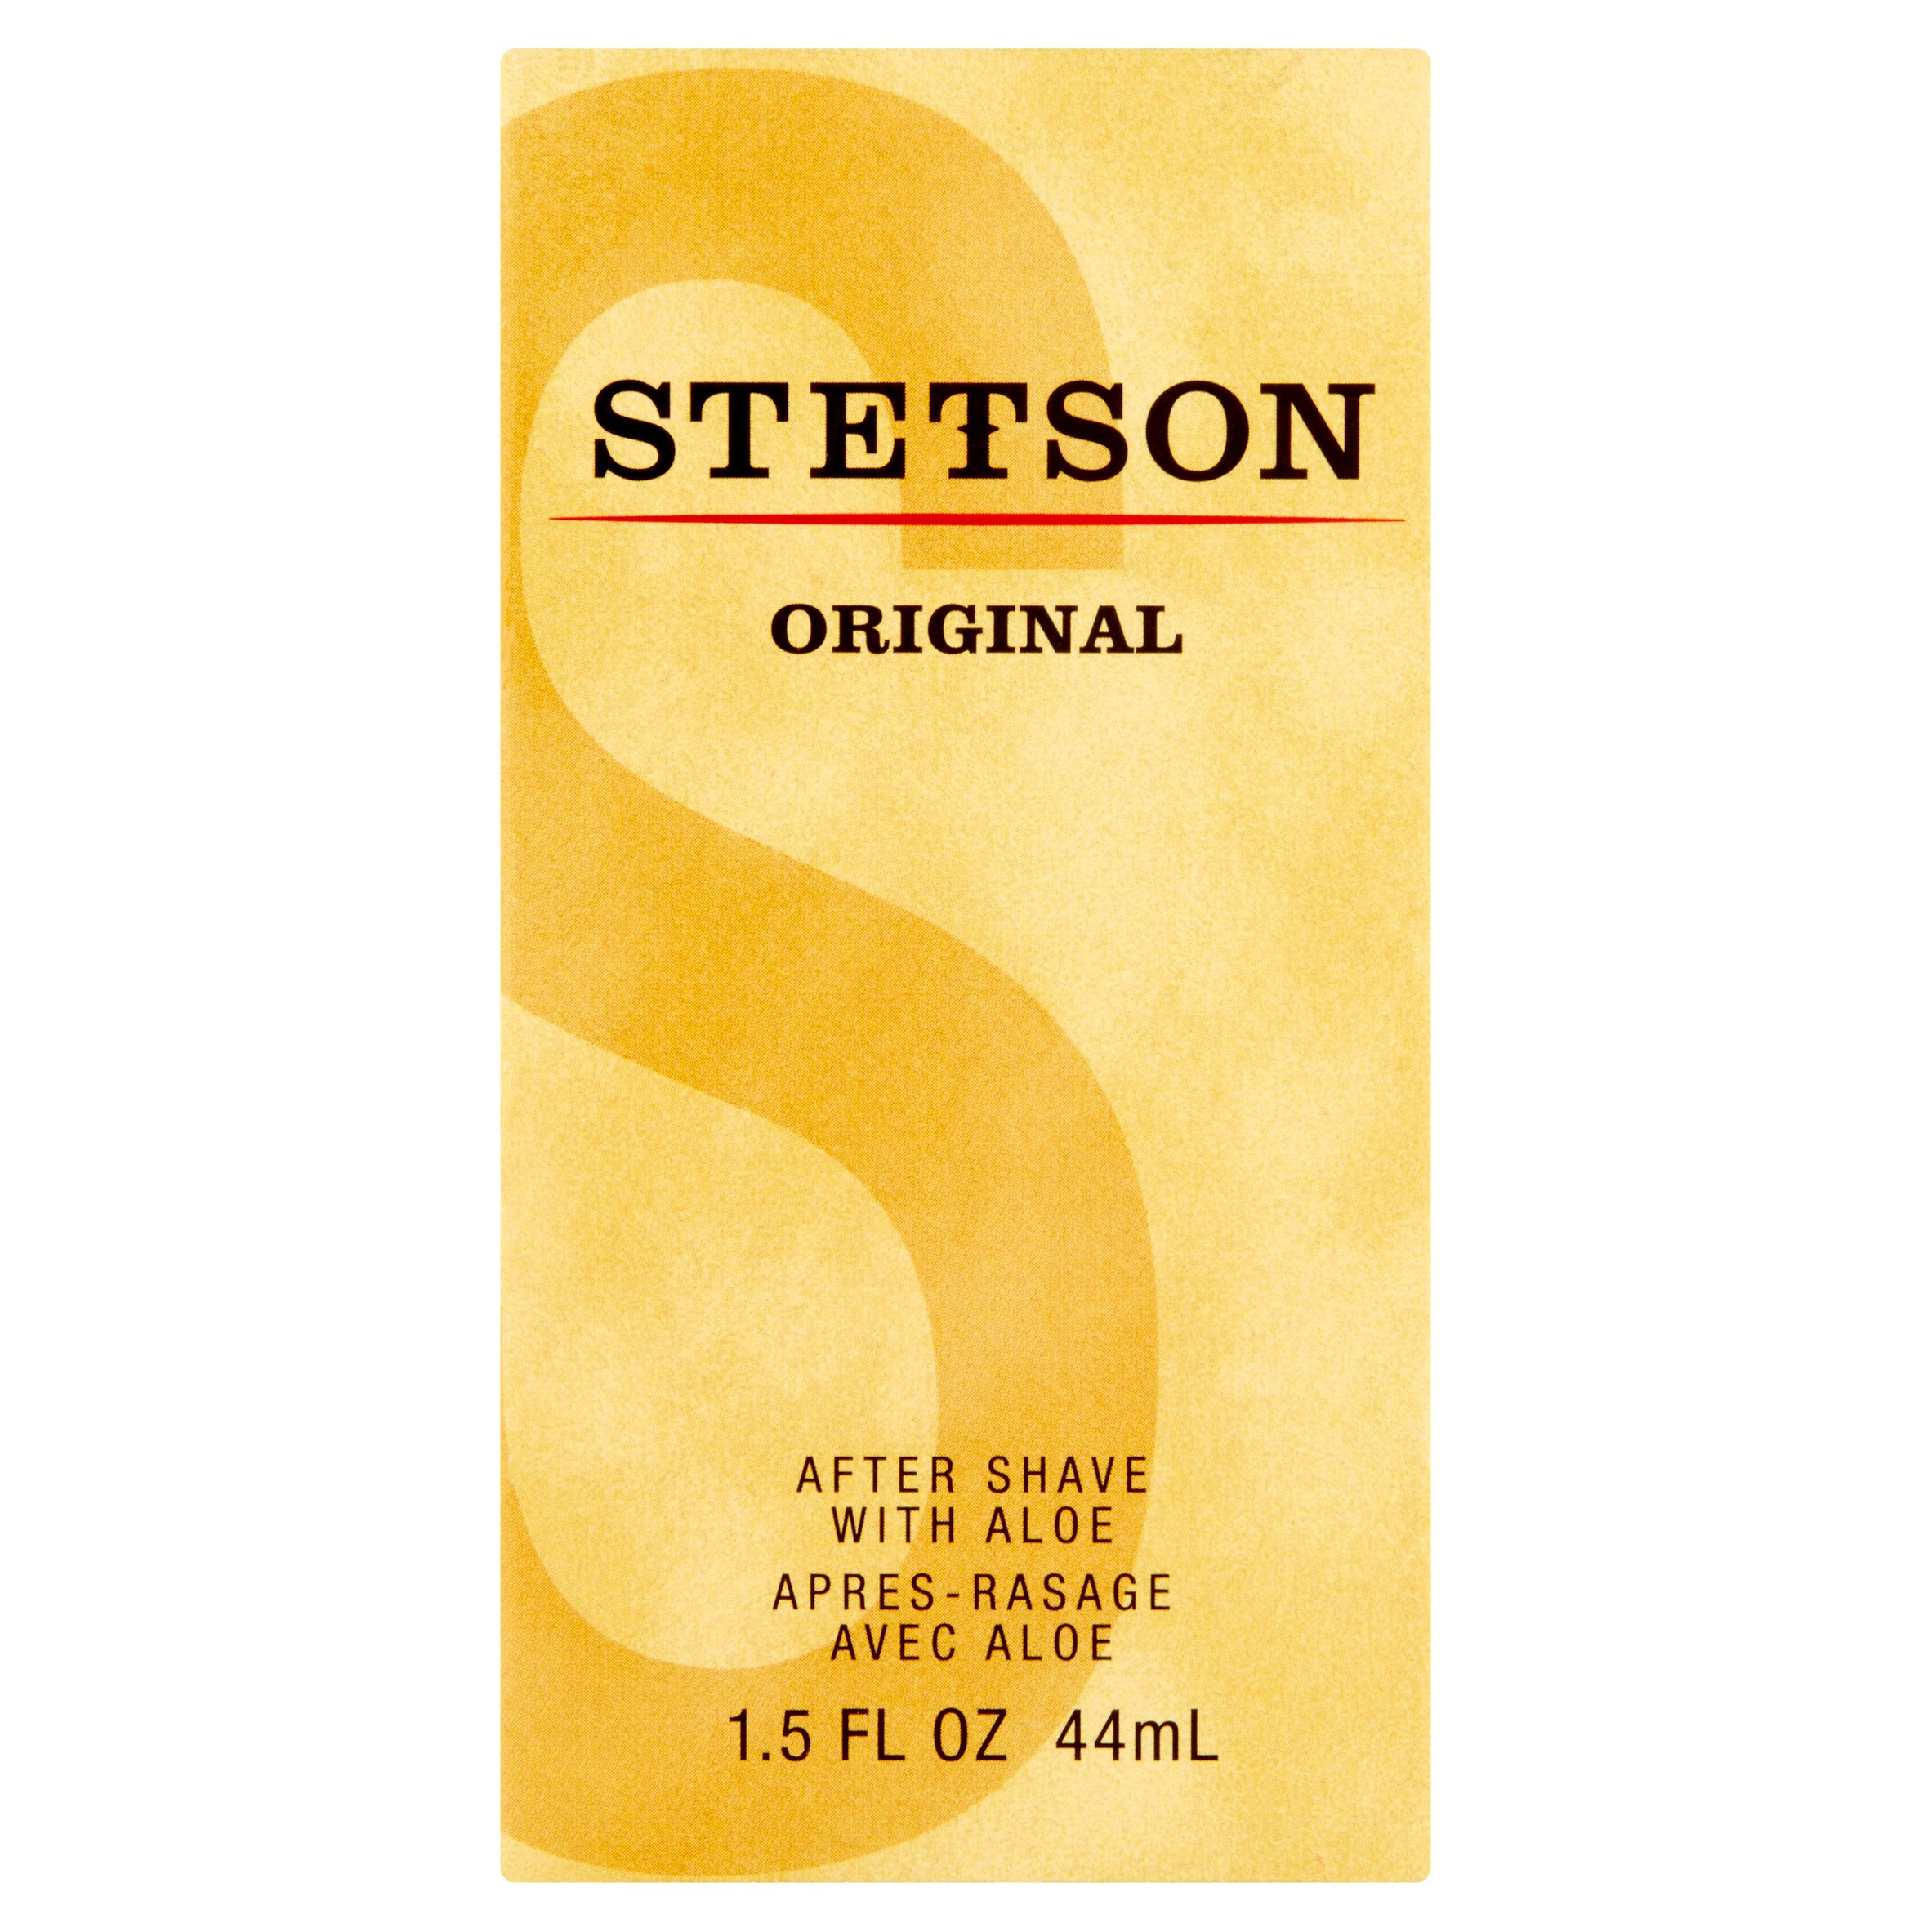 Stetson Original After Shave with Aloe, 1.5 fl oz